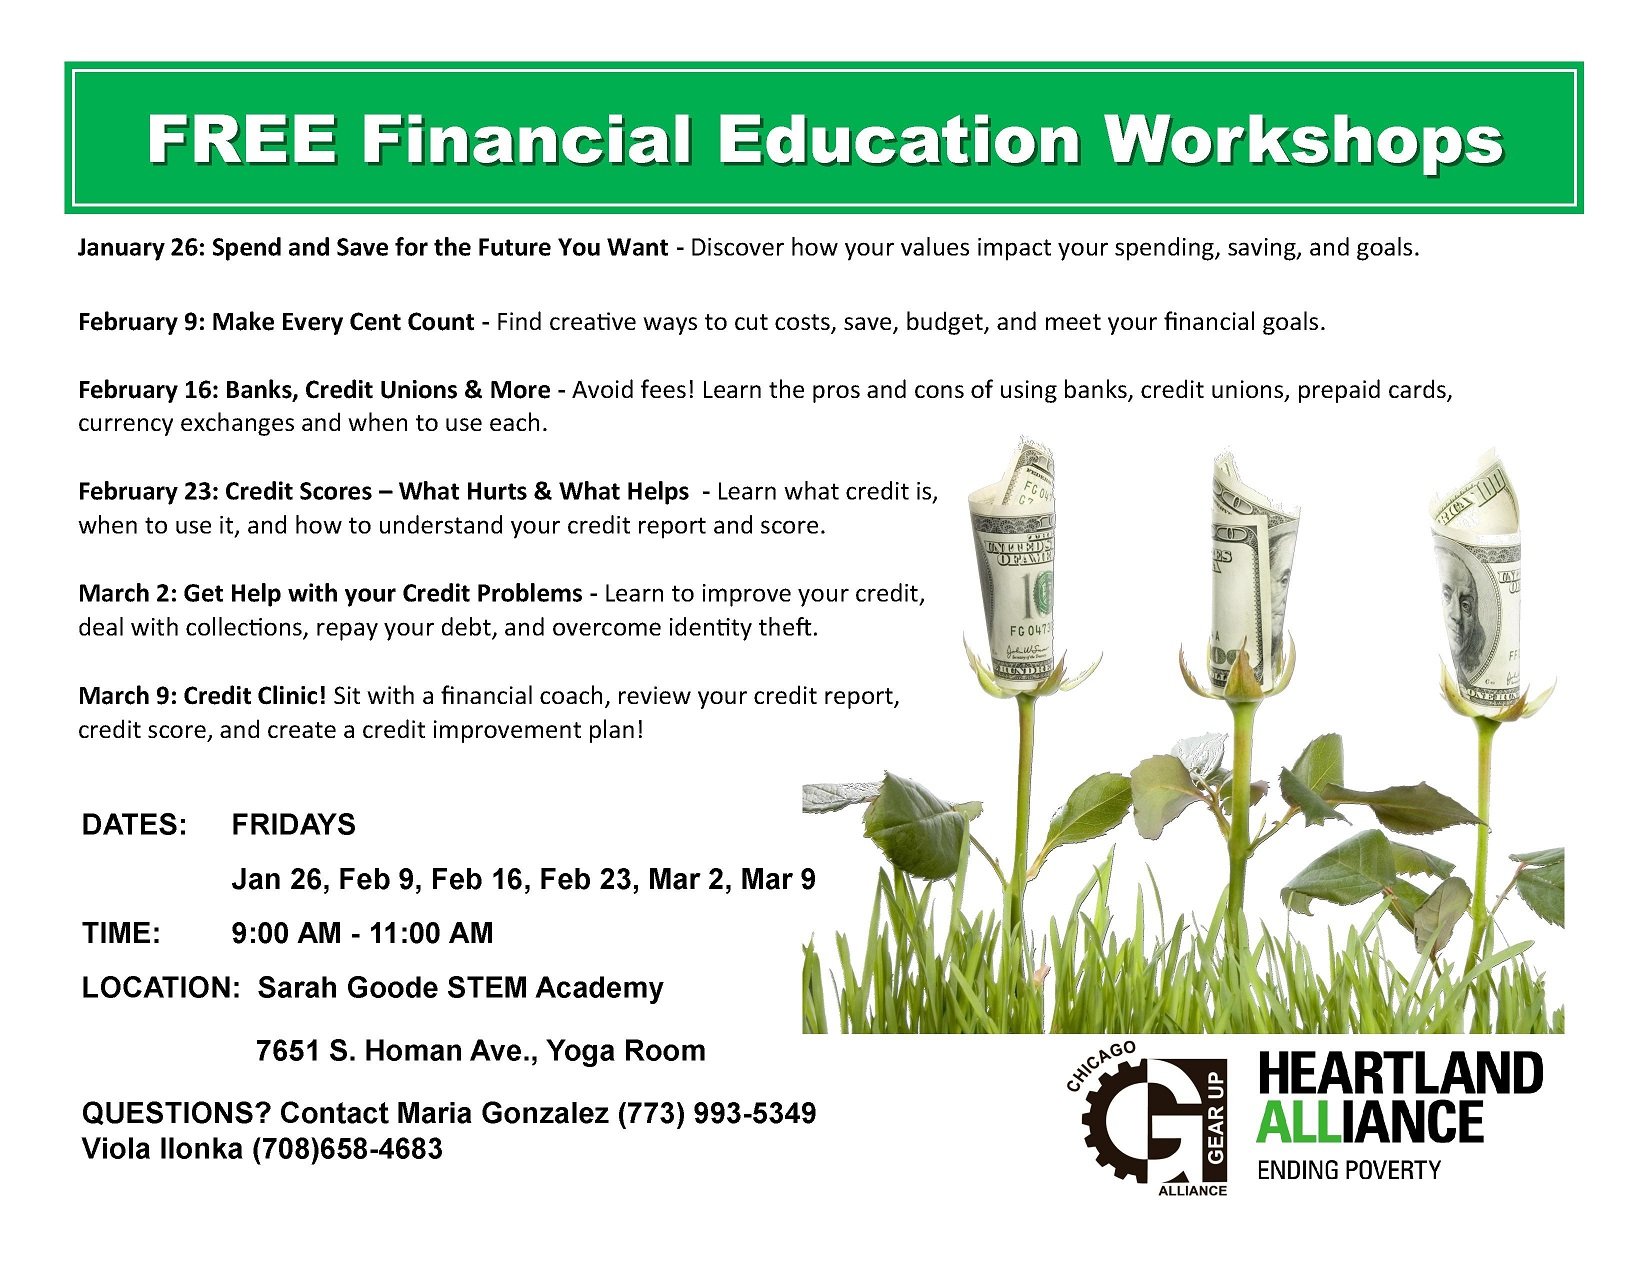 FREE Financial Education Workshops